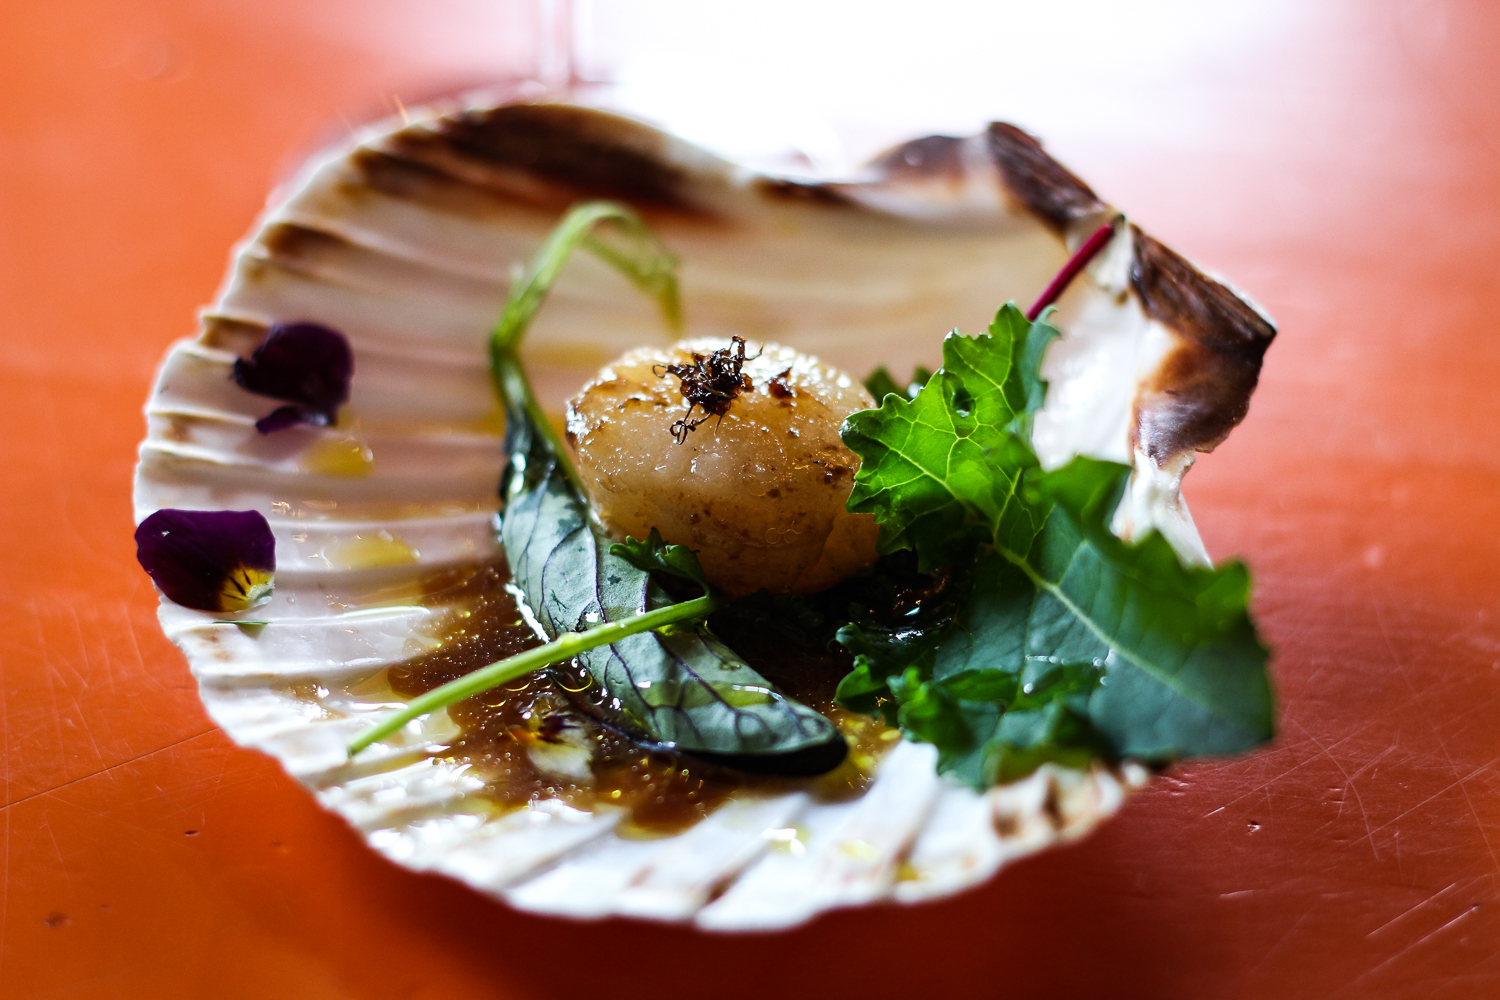 coffee-food-pairing-dinner-experience-seafood-scallop